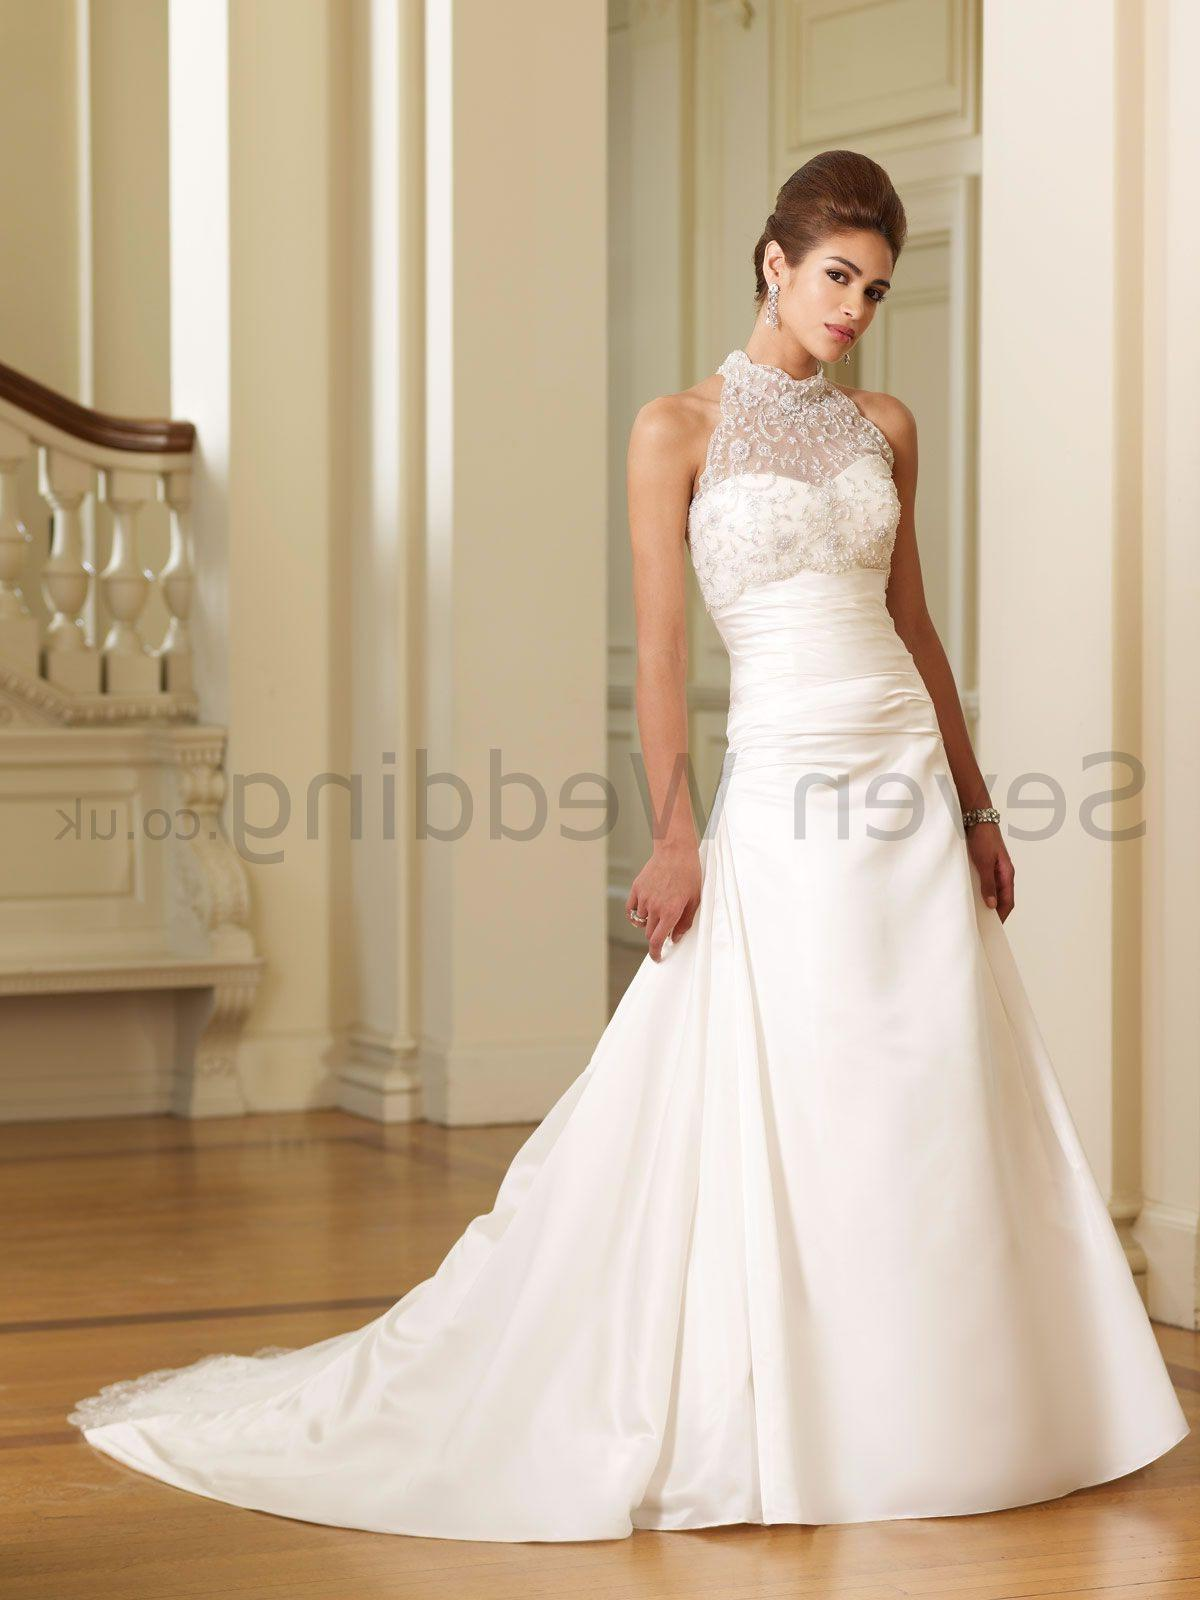 Wedding dresses with high neck